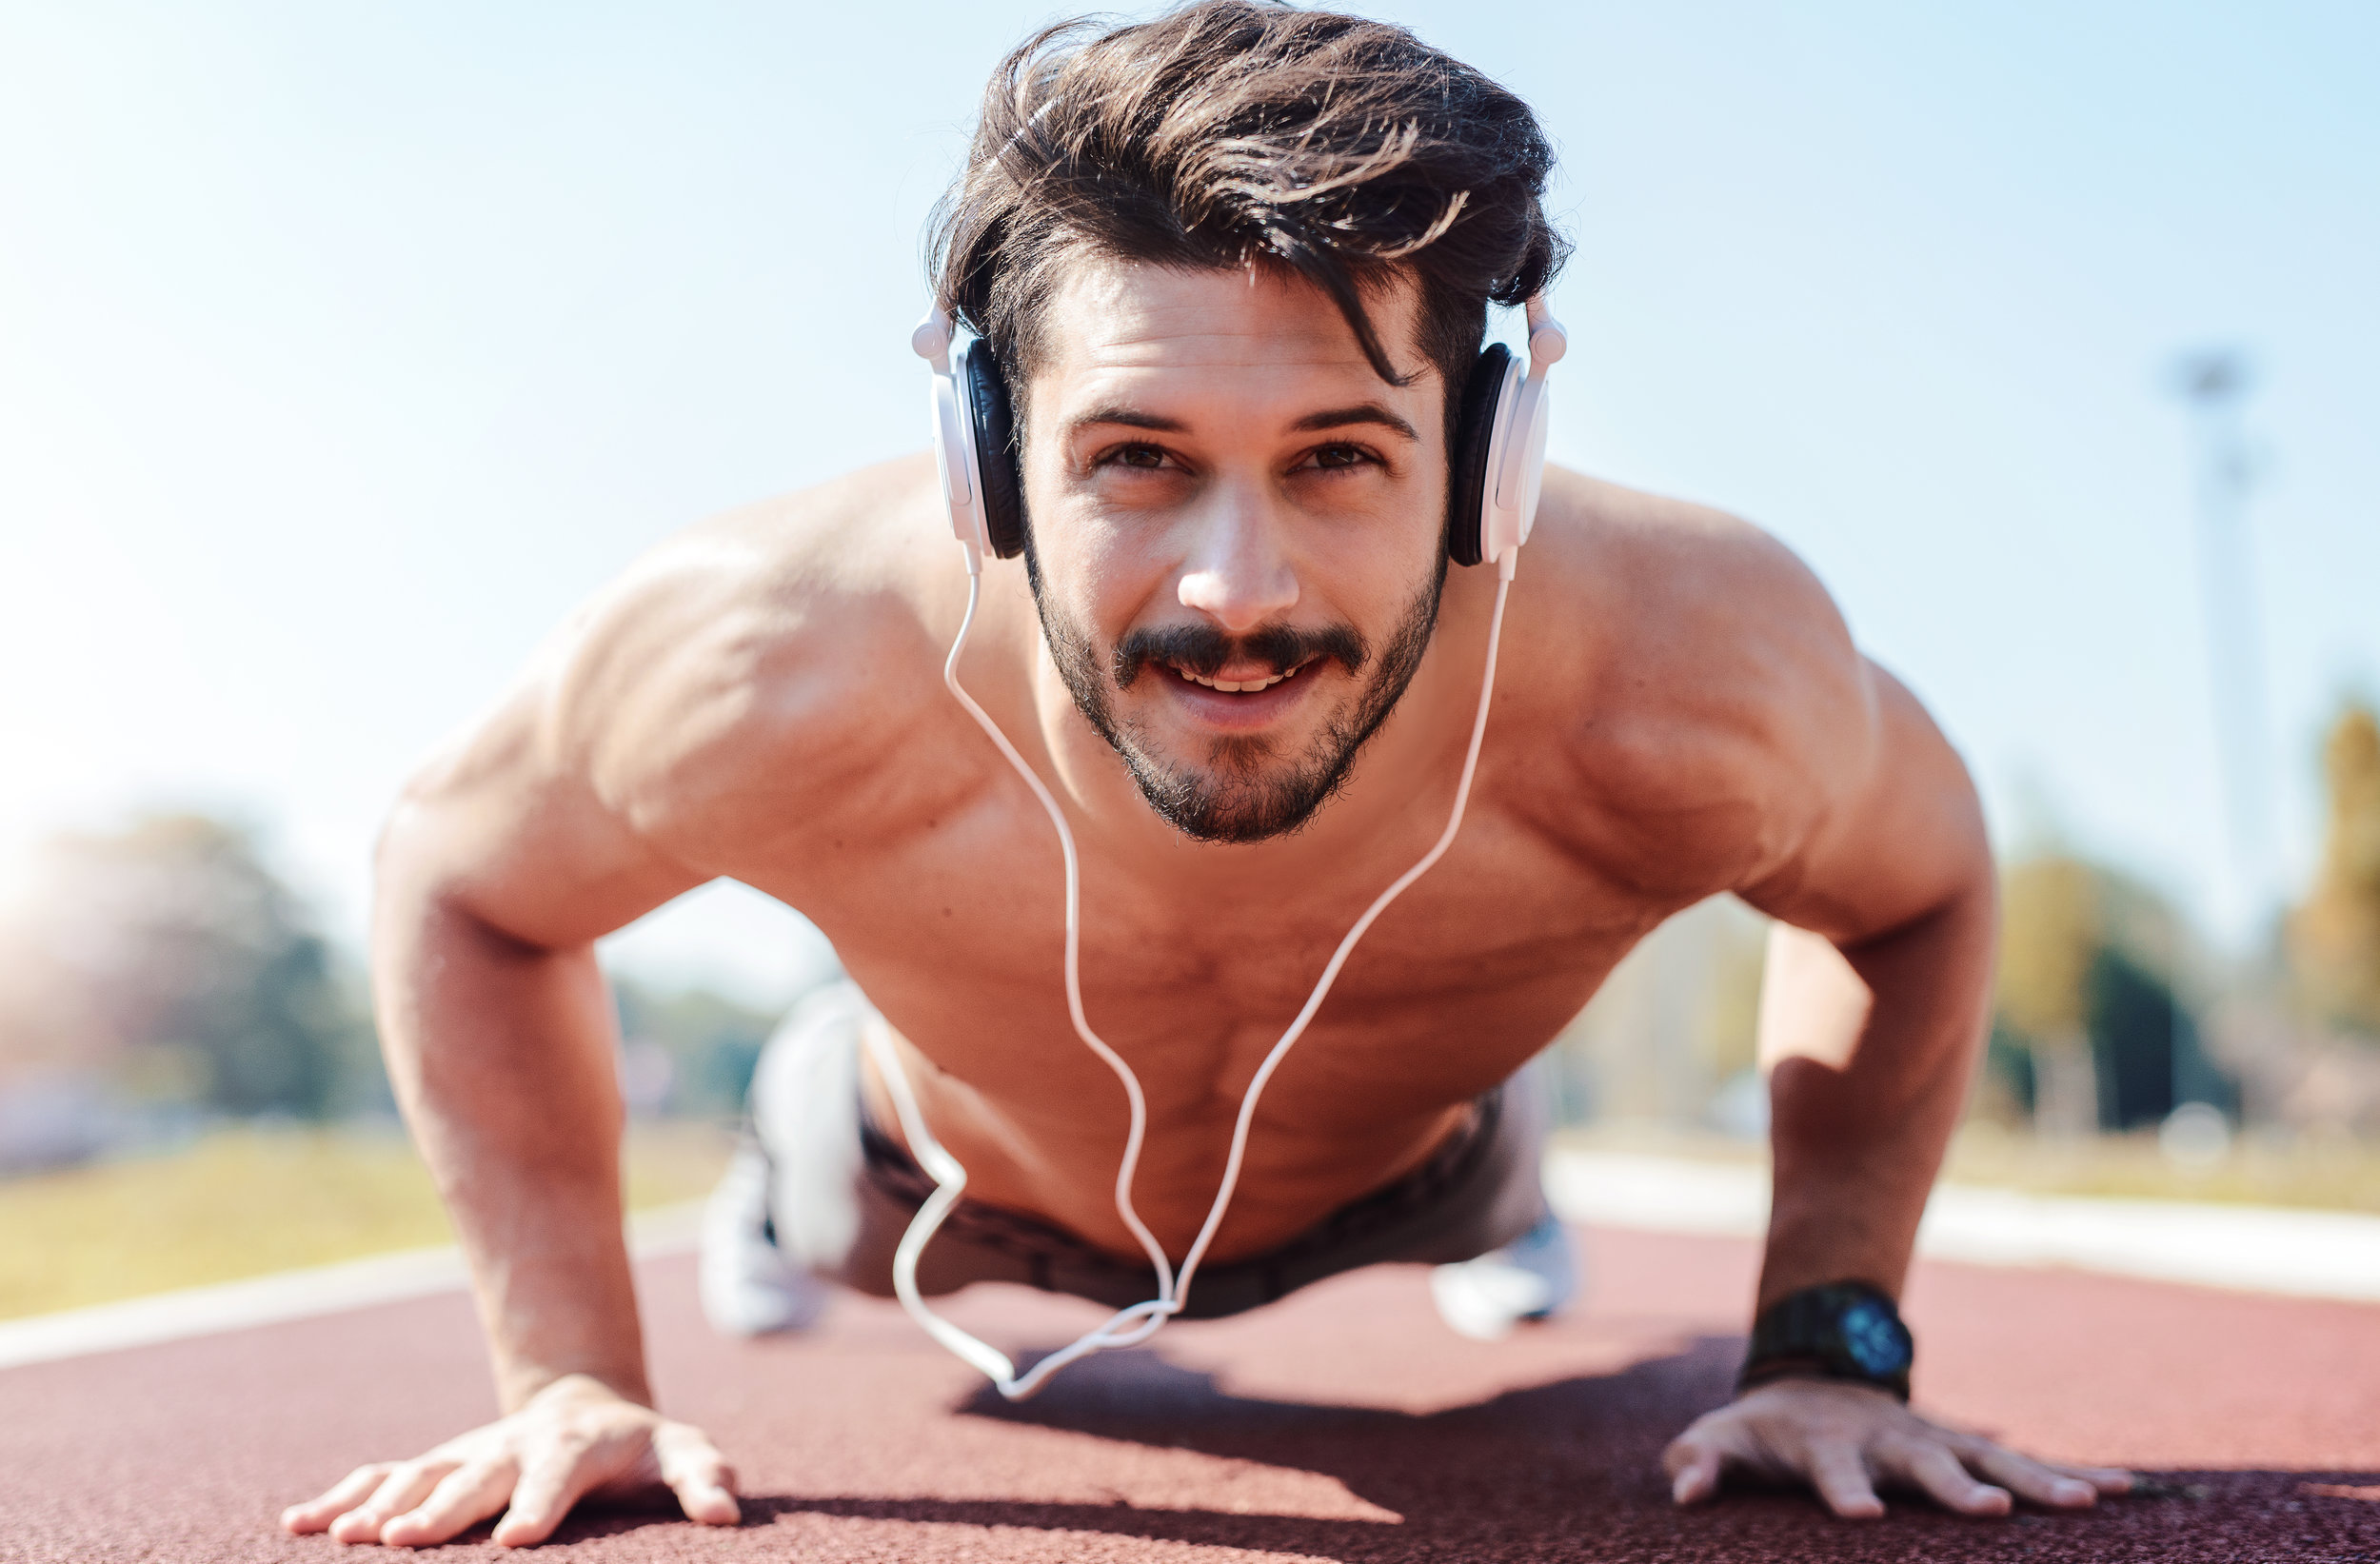 Buff guy with headphones does push ups, skincare routine for guys who like to work out